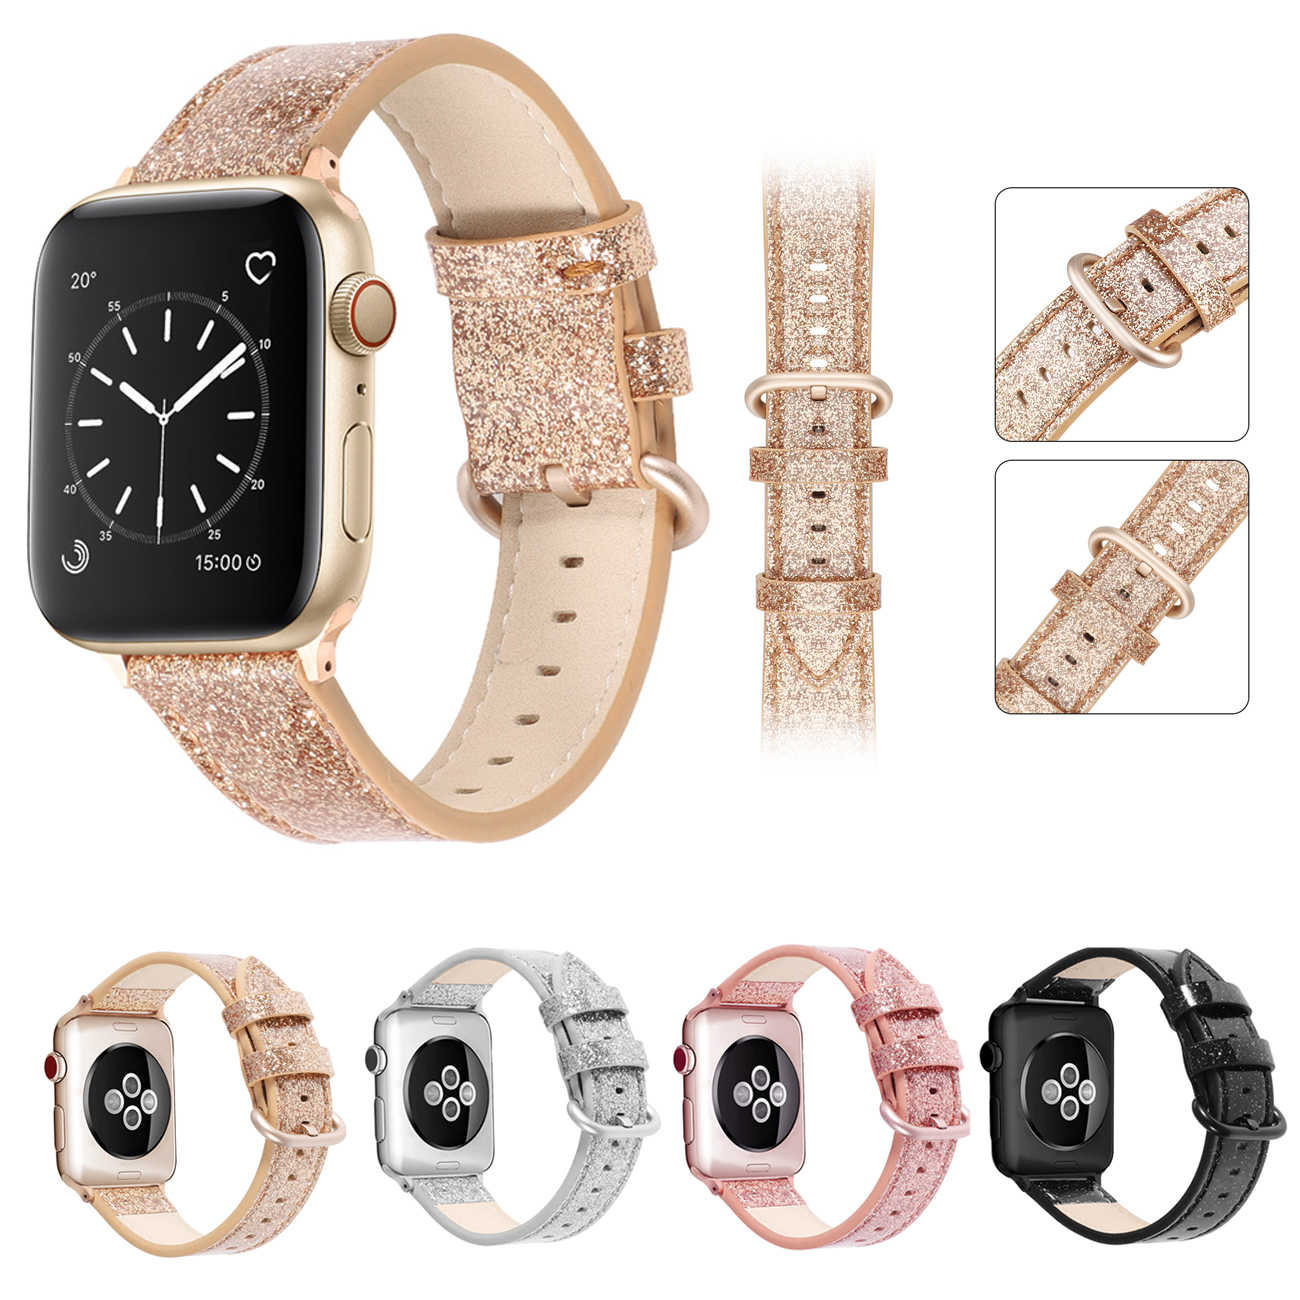 slim fit Loop for Apple Watch Leather Band 40mm 44mm for iwatch 38mm 42mm Strap series 5 4 3 2 1